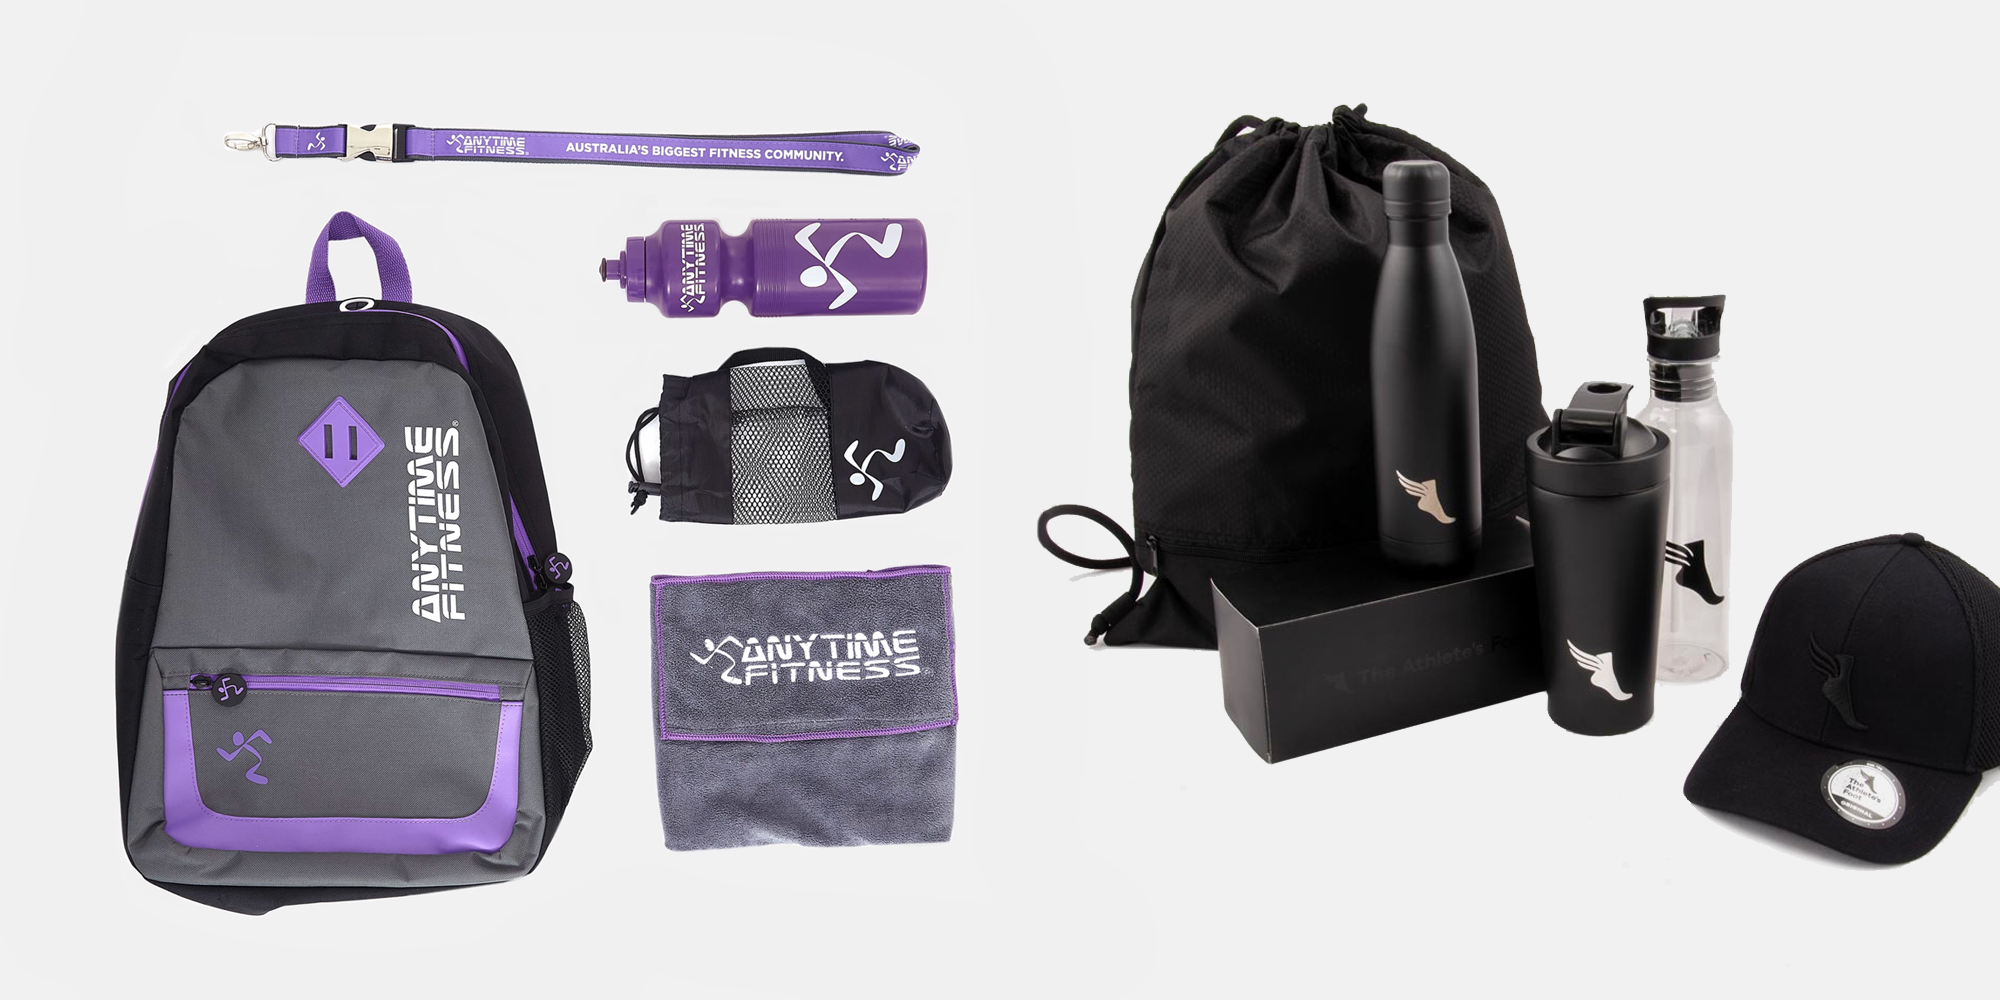 Are Promotional Products Part of Your Marketing Merchandise Strategy?